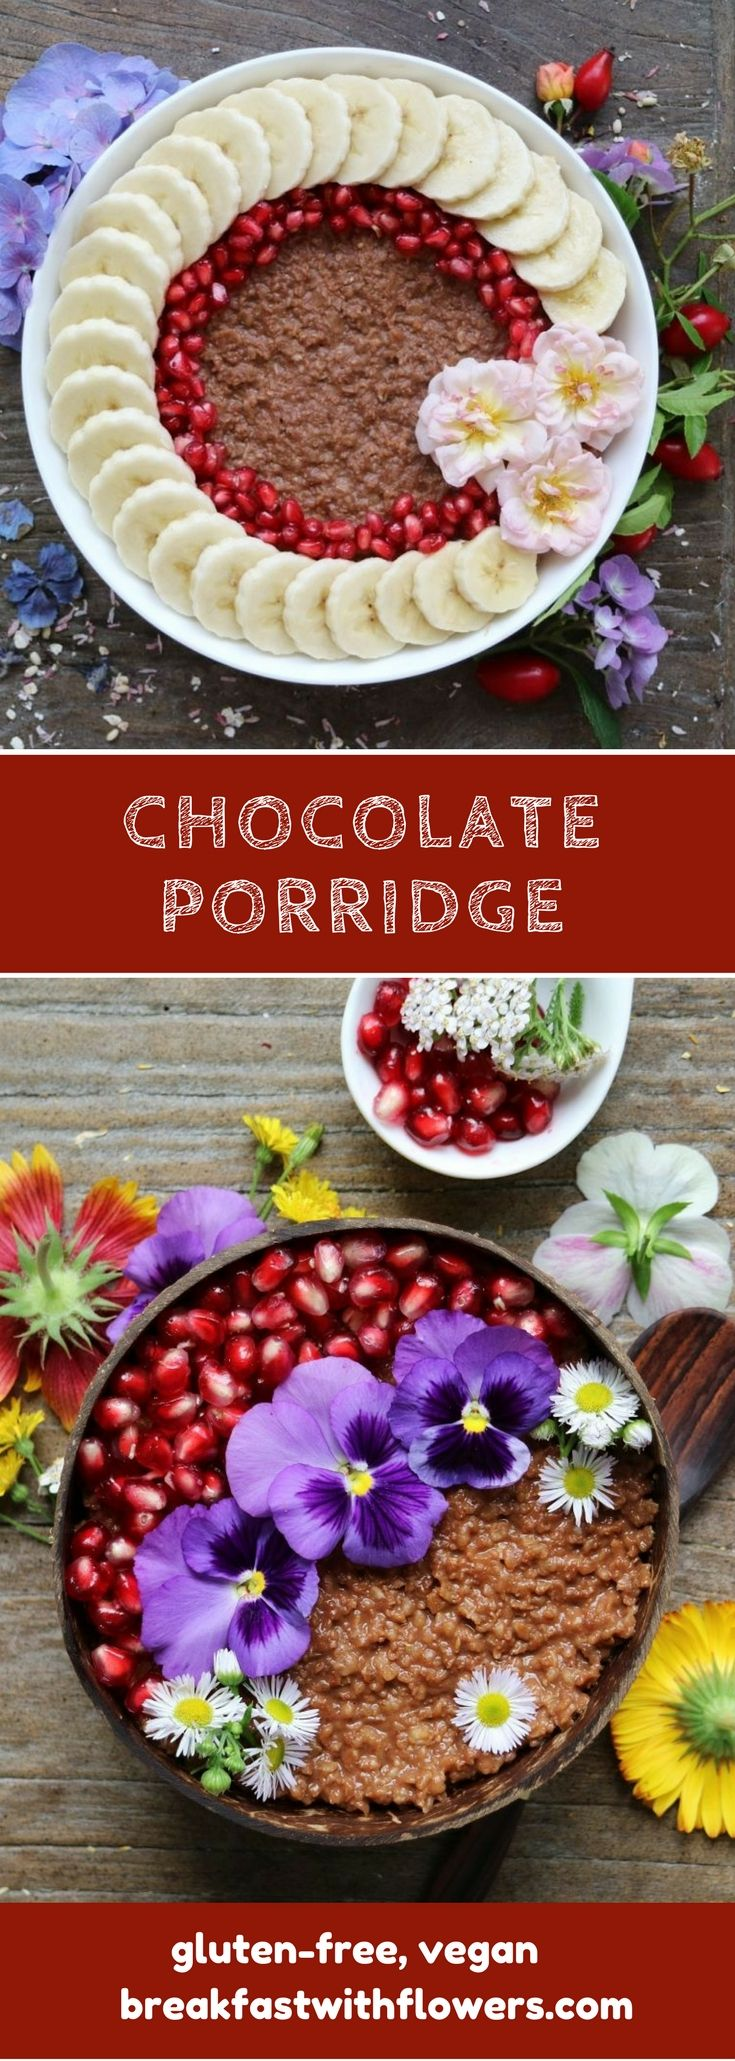 Creamy Chocolate Porridge with a hint of vanilla, decorated with edible flowers. More inspiration on breakfastwithflowers.com